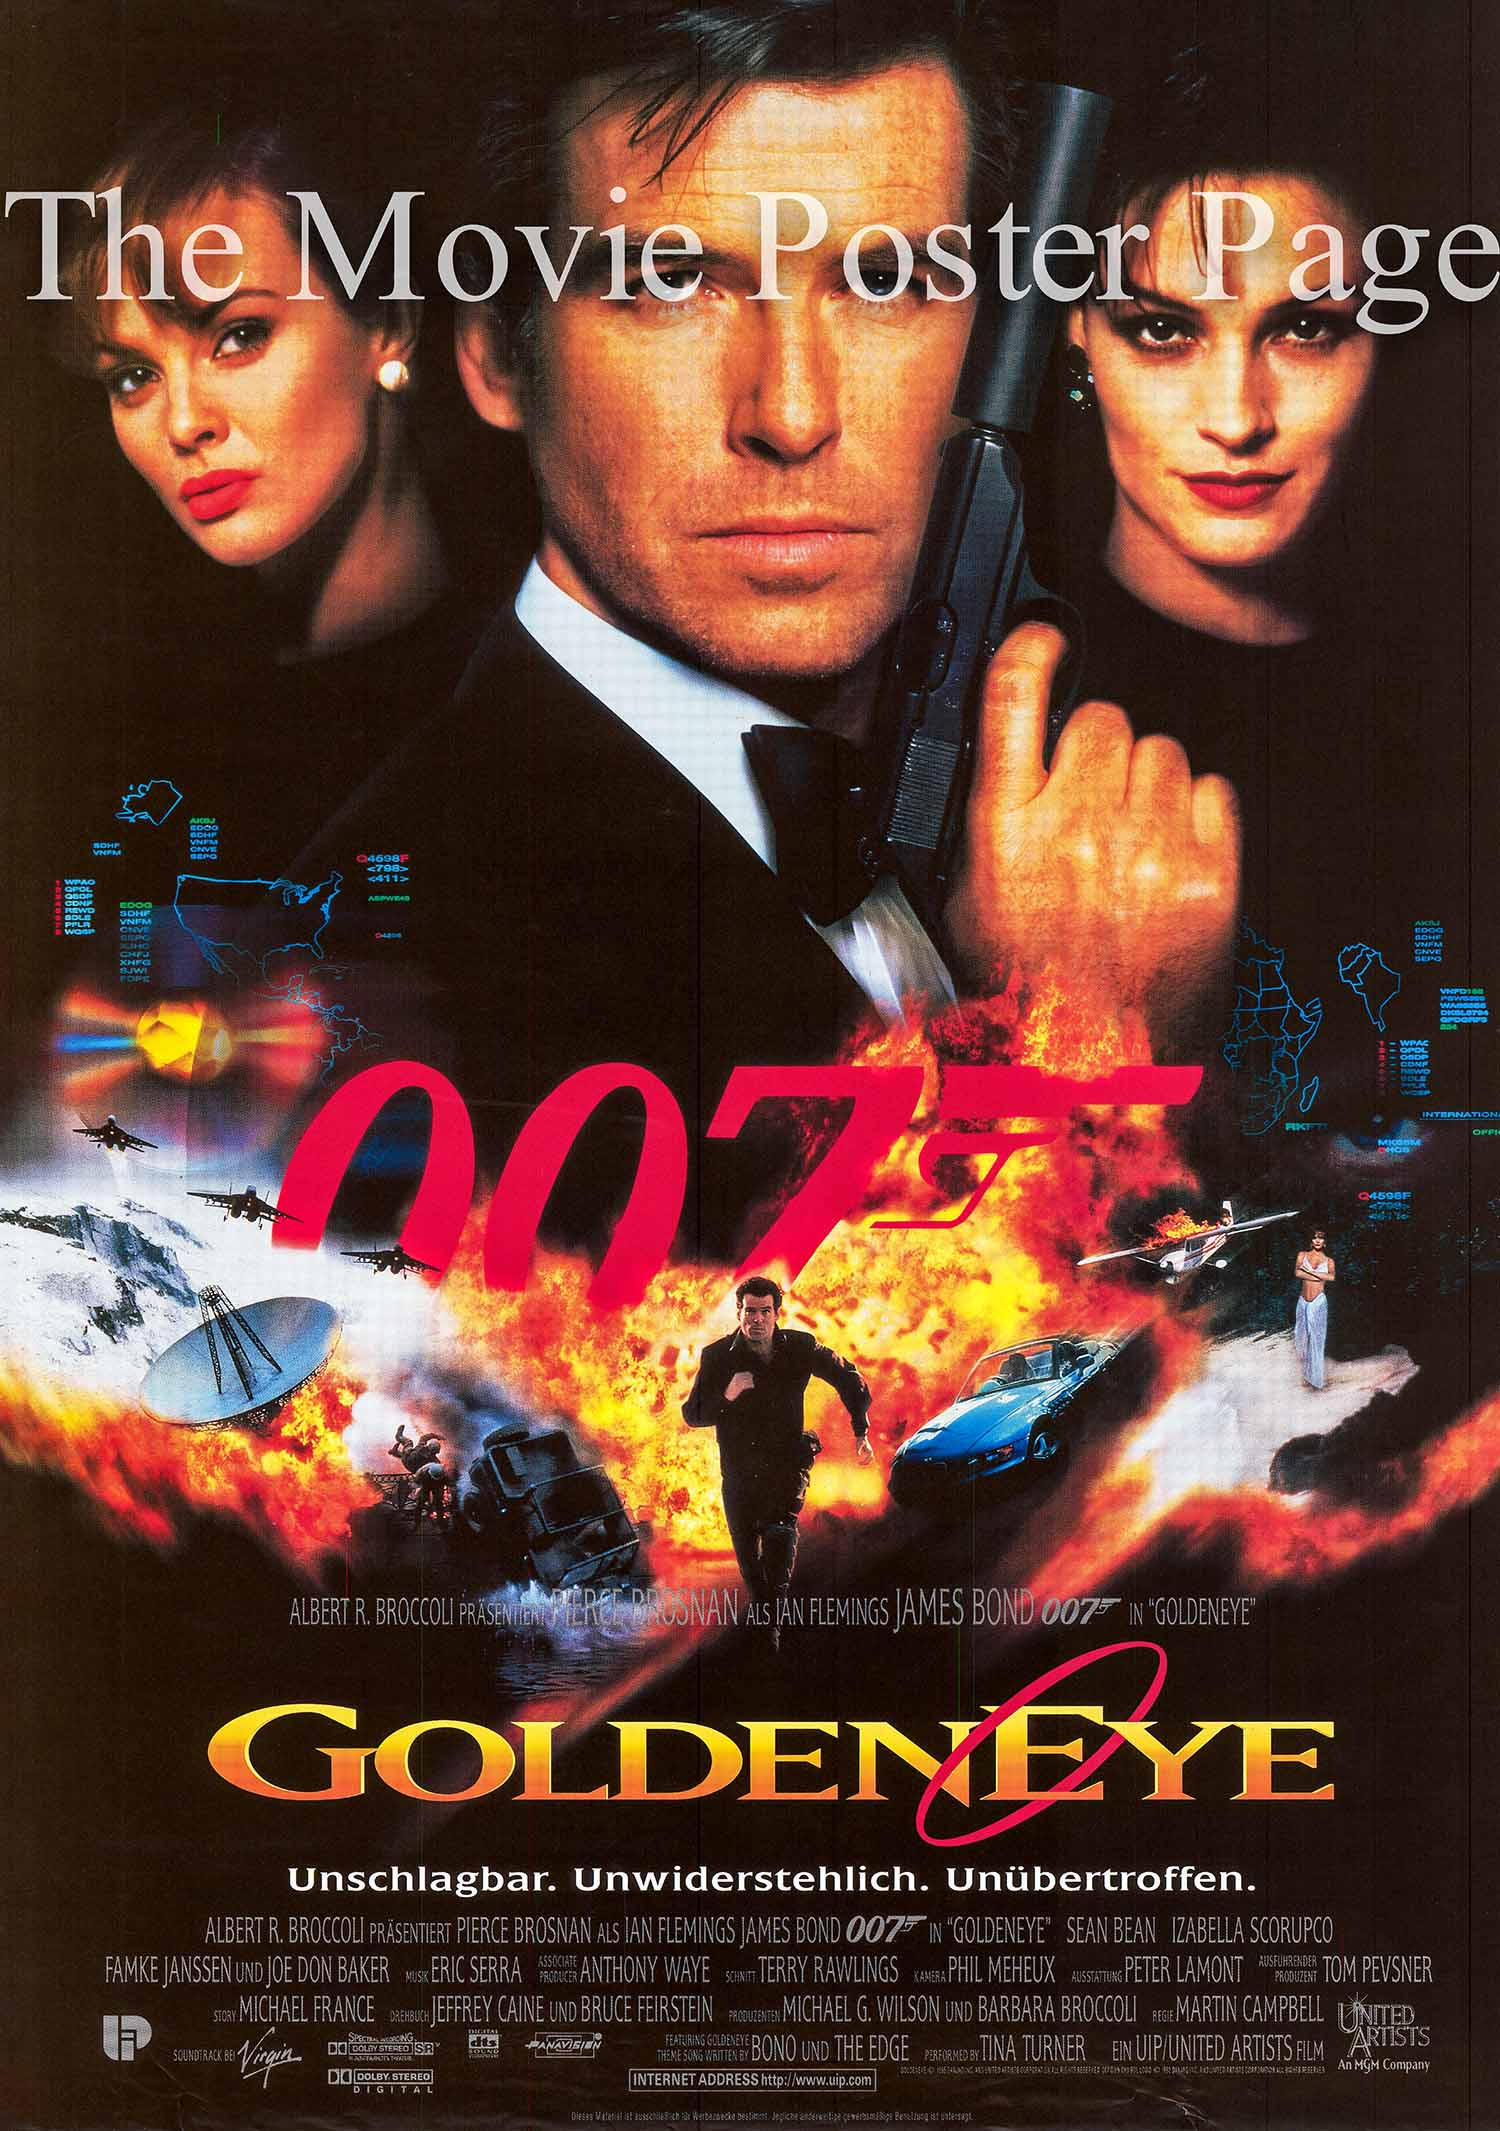 Pictured is a German promotional poster for the 1995 Martin Campbell film Goldeneye starring Pierce Brosnan as James Bond.